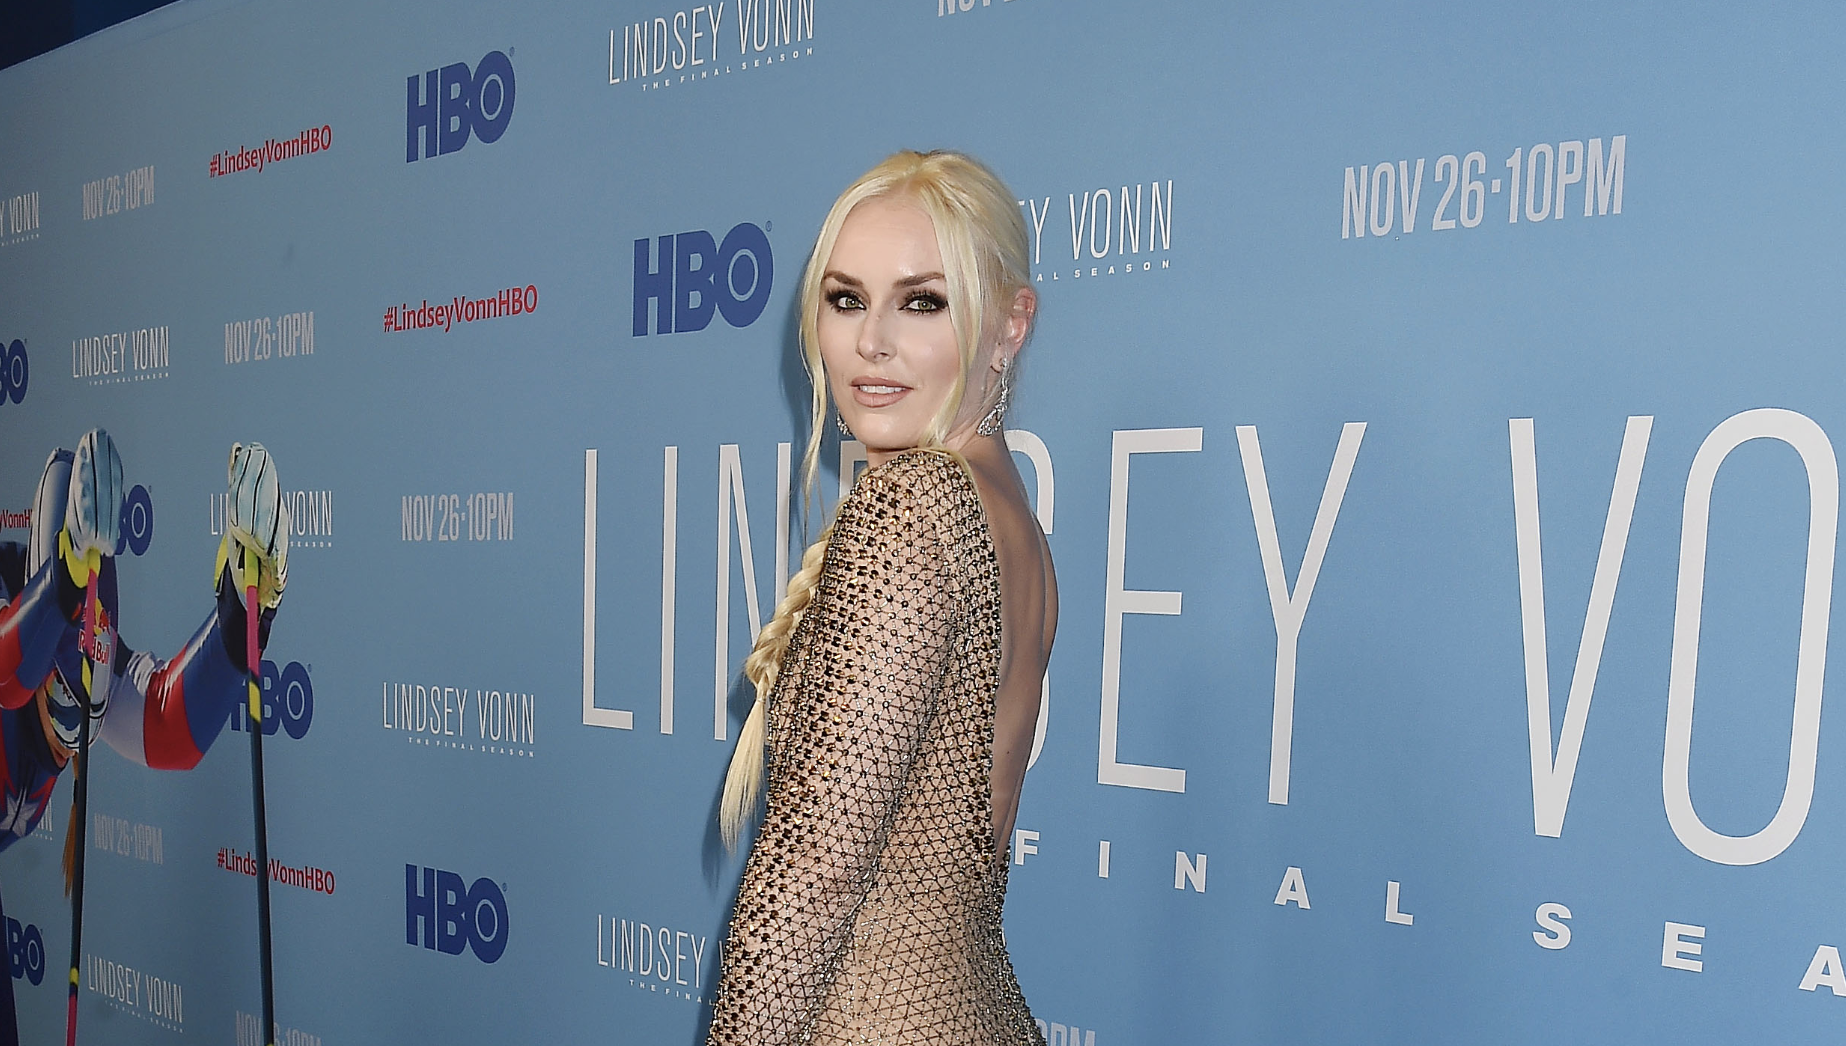 Lindsey Vonn's Incredible Climb & View from the Top